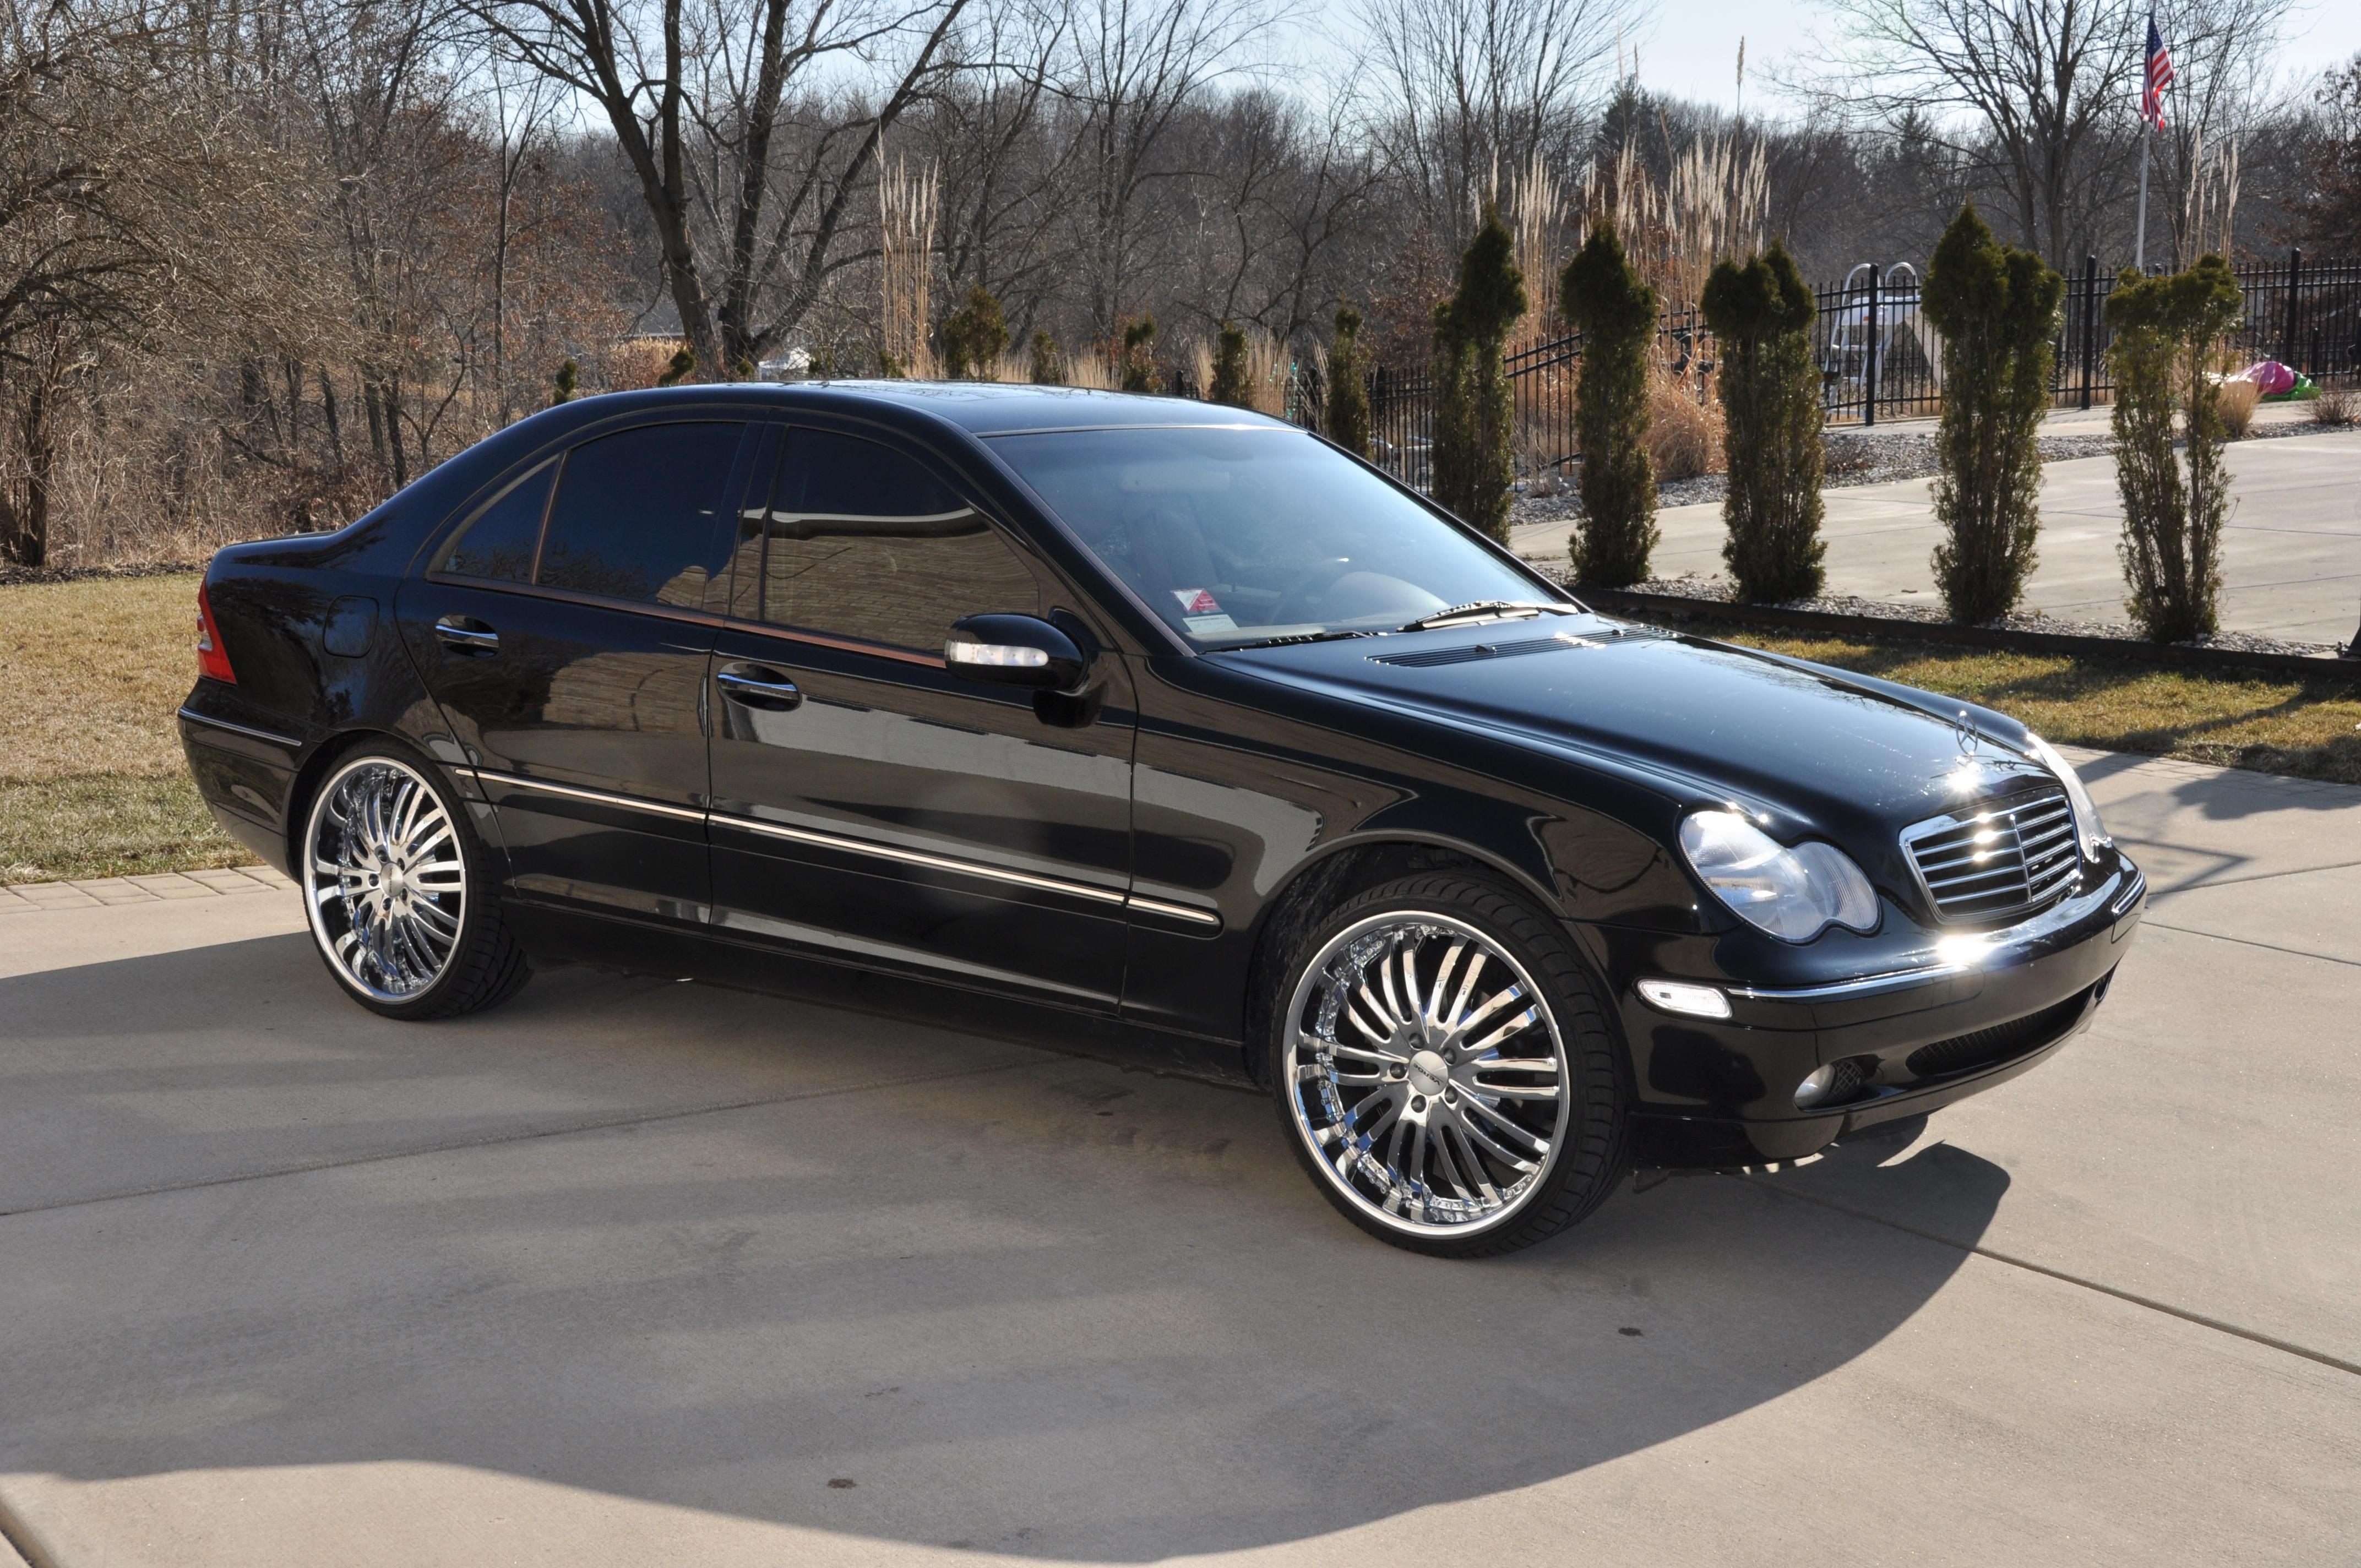 2002 Mercedes-Benz C320 - View our current inventory at ...